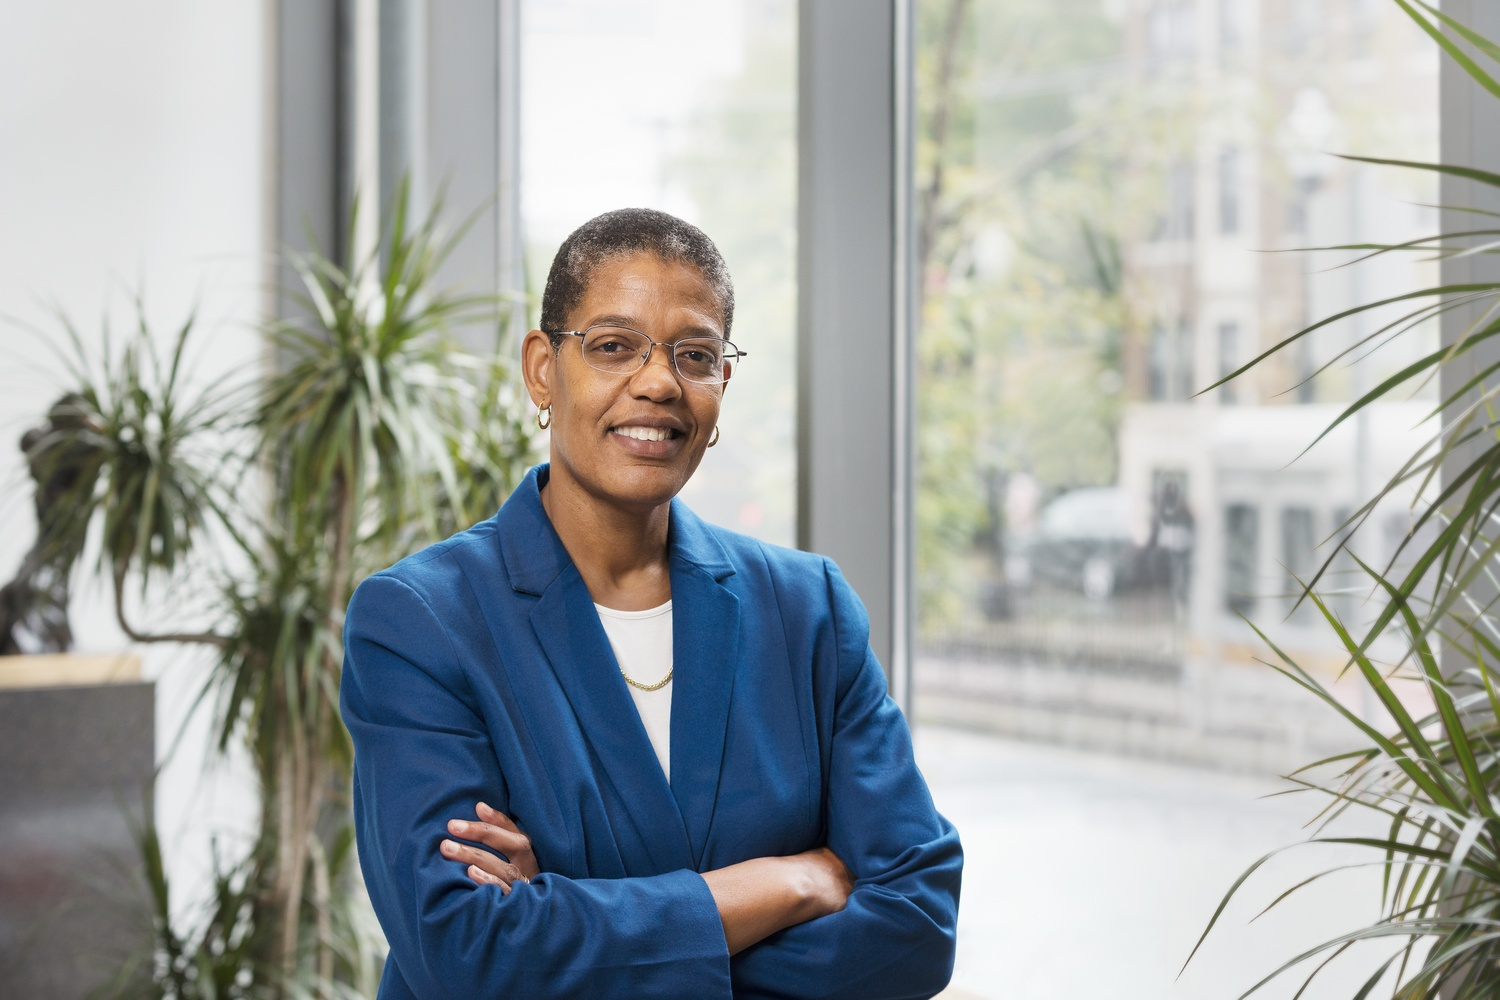 Michelle A. Williams, an epidemiologist and professor at the School of Public Health, is the first black person to head a faculty at Harvard and the first female dean of the school.